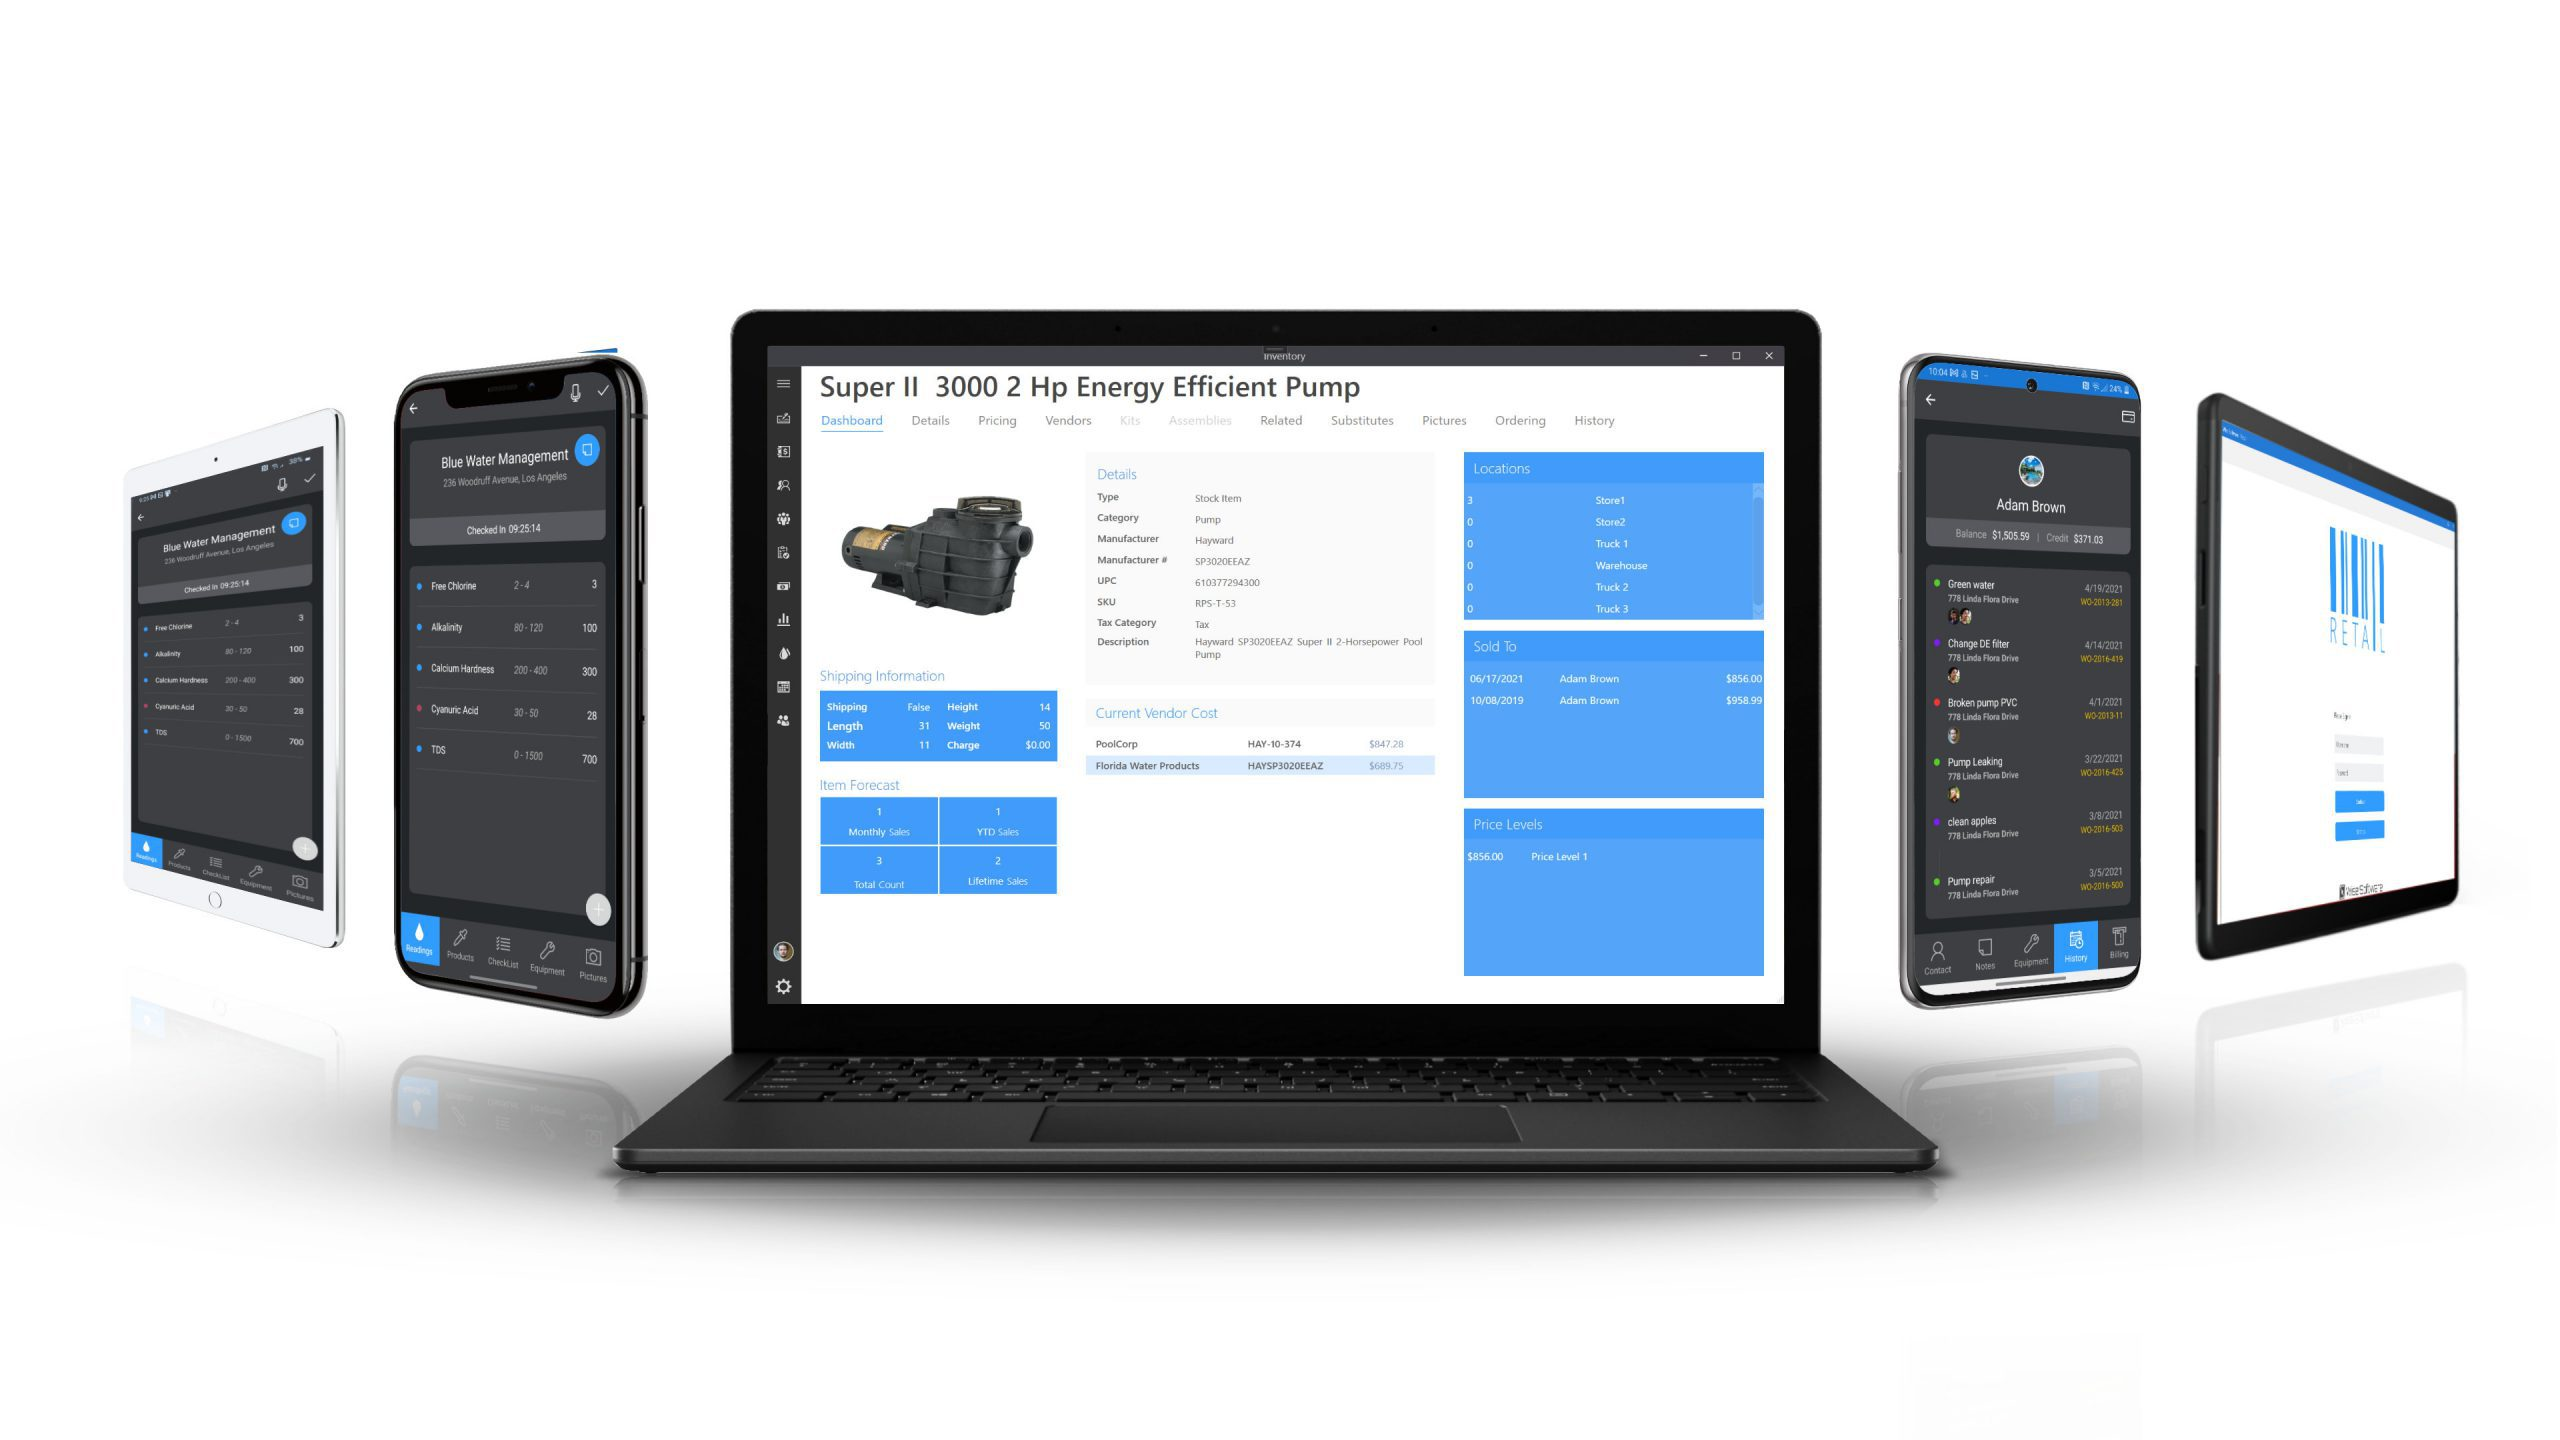 Wise Software - Enterprise running on a laptop, tablets and phones.